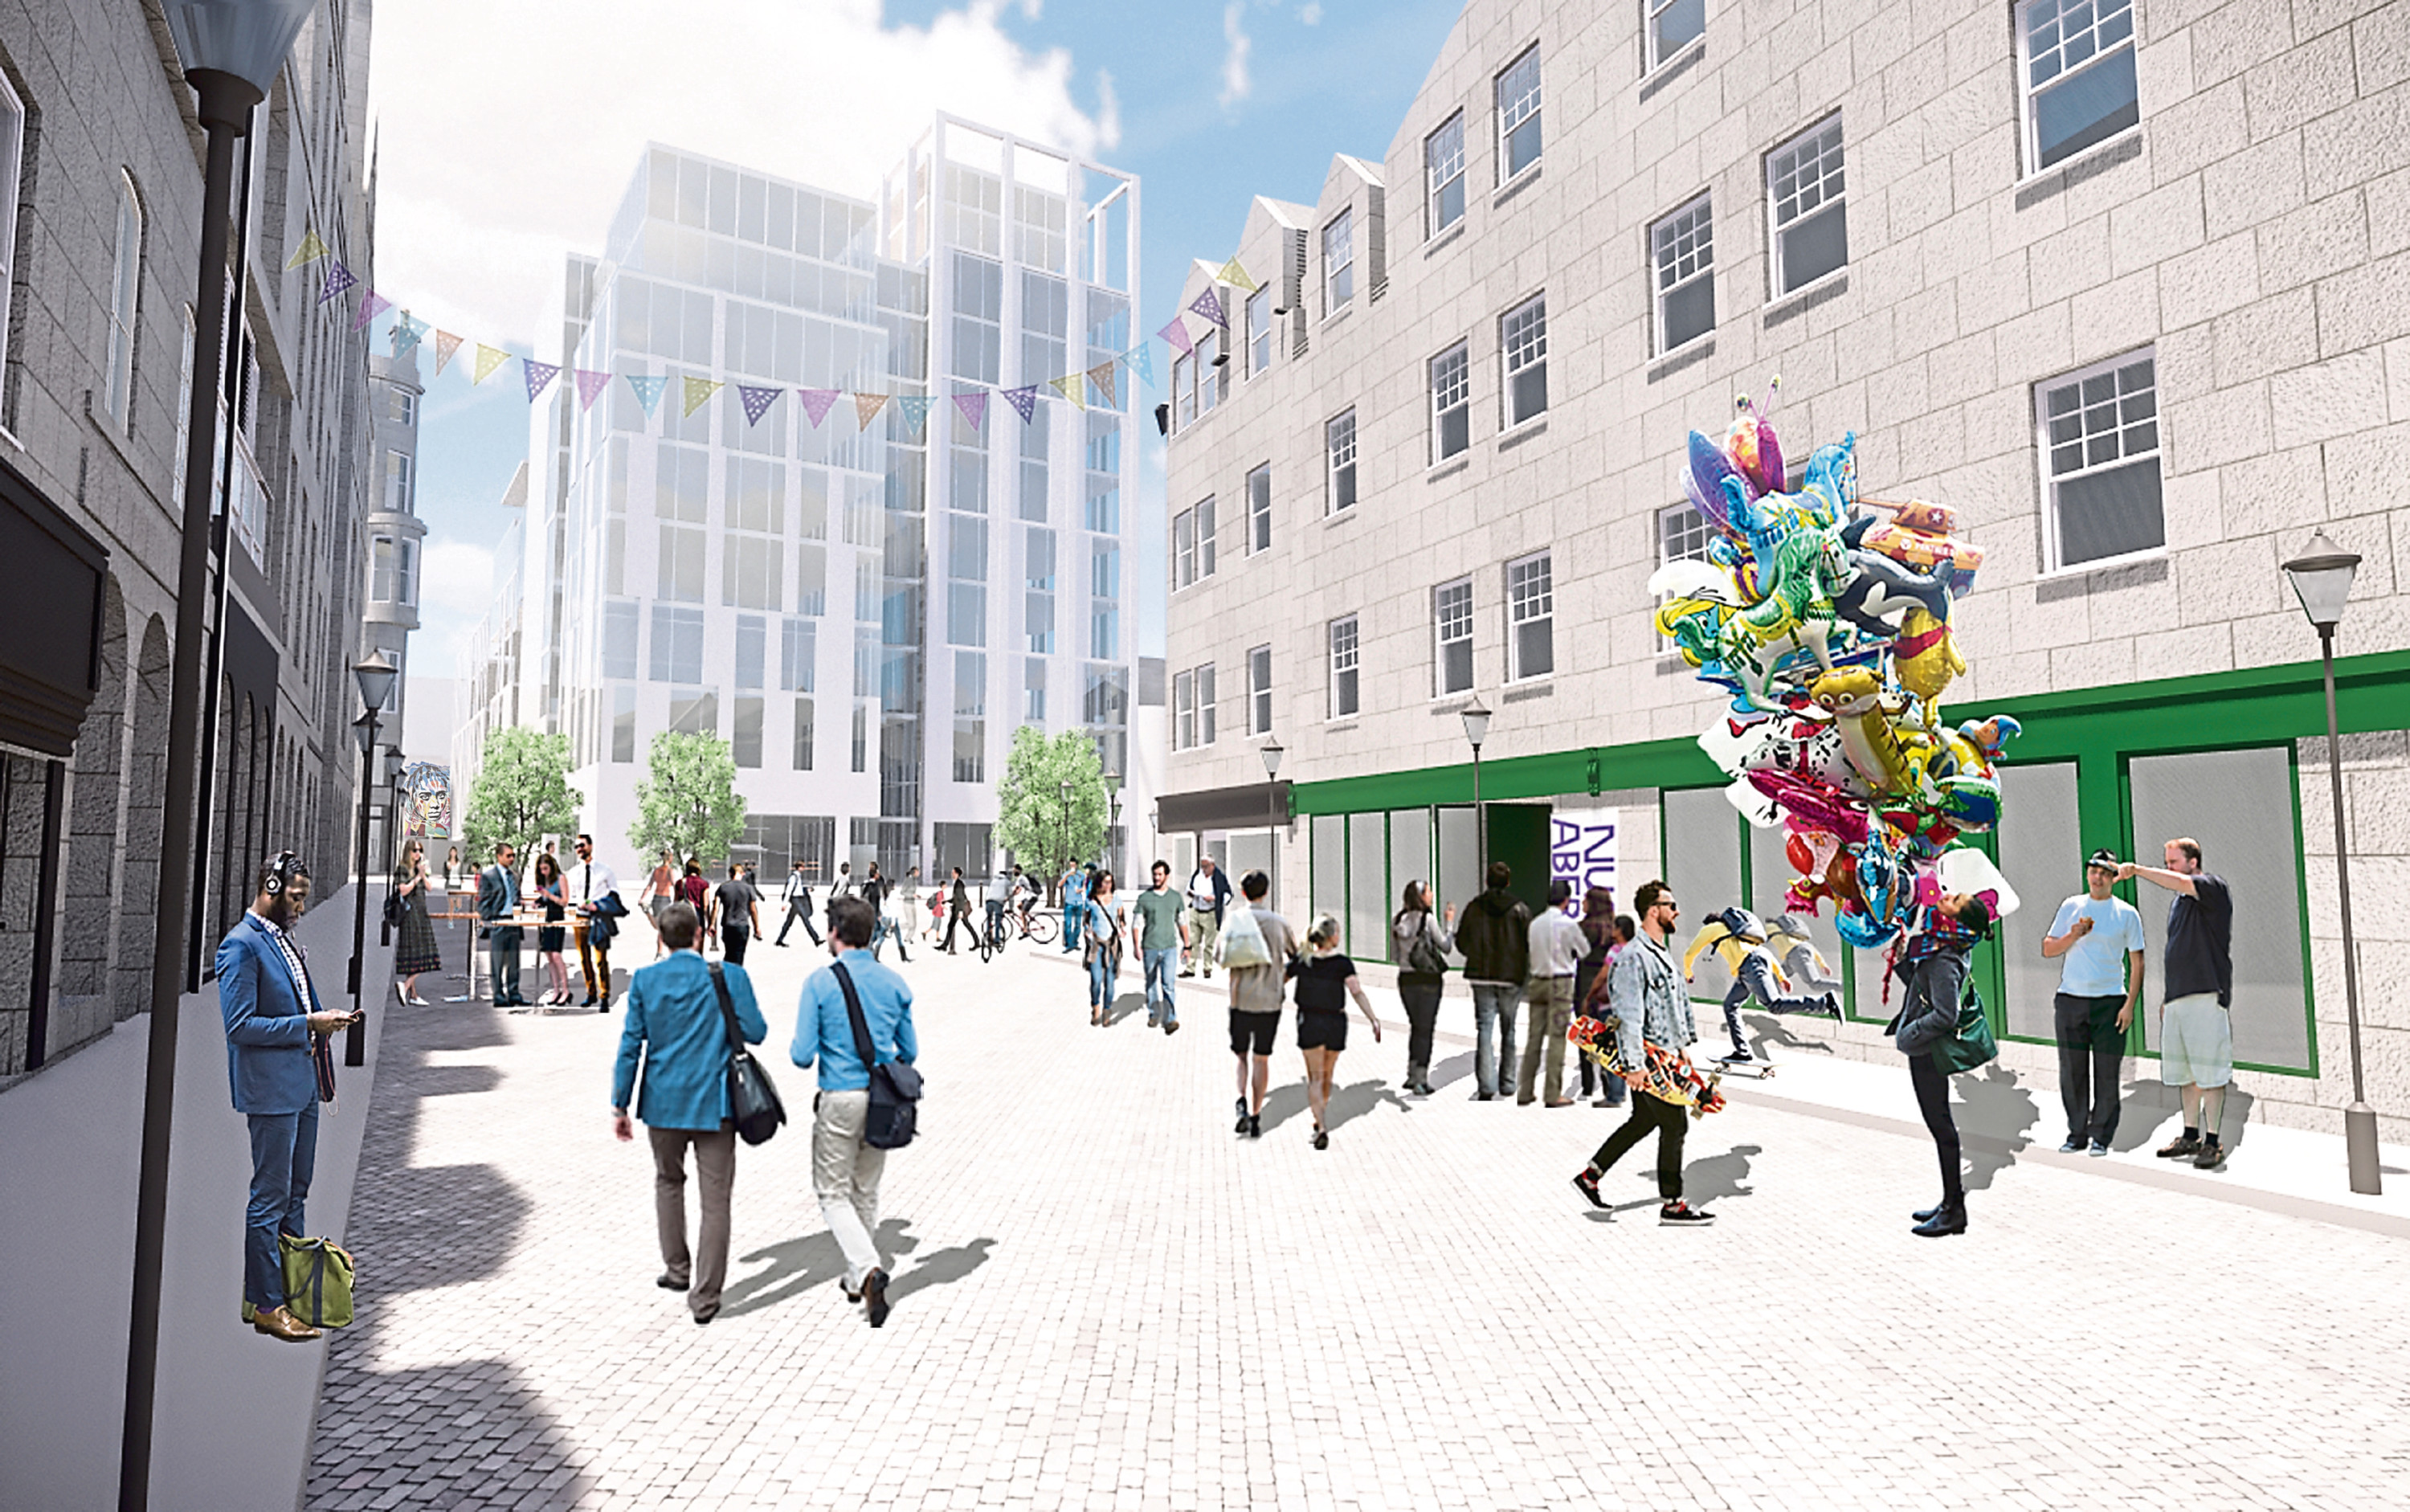 An artist's impression of how the new site would look if the city centre plans are given the go-ahead.